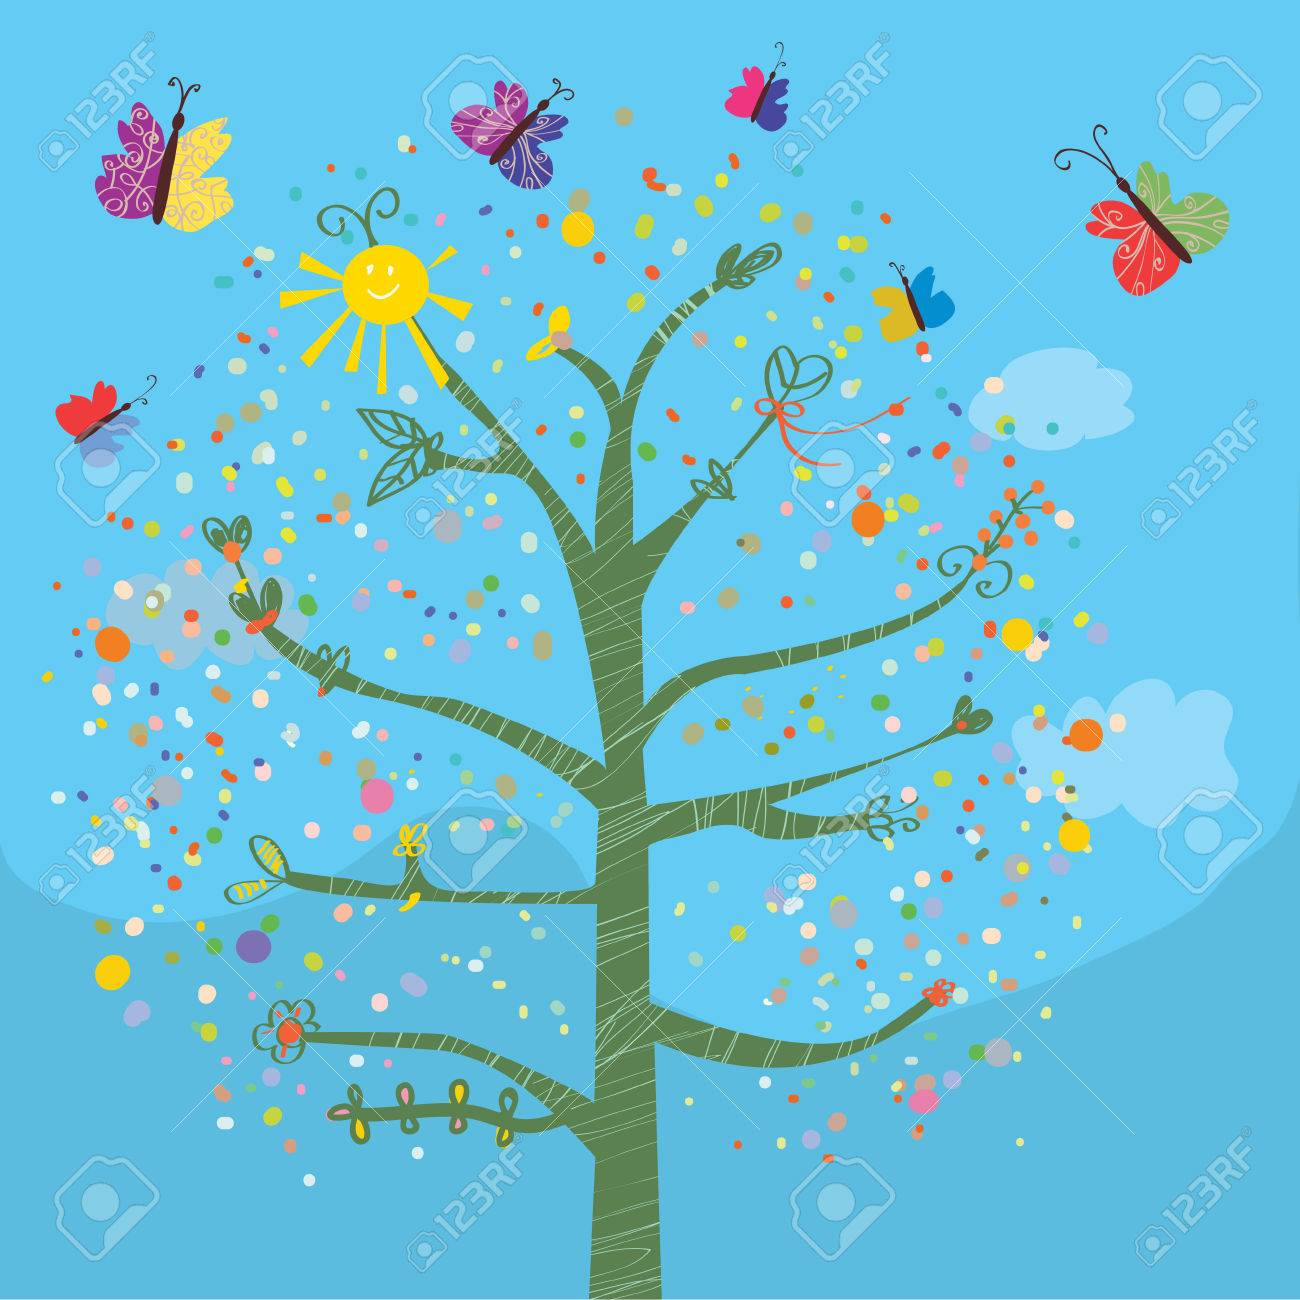 funny card with tree and butterflies for kids royalty free